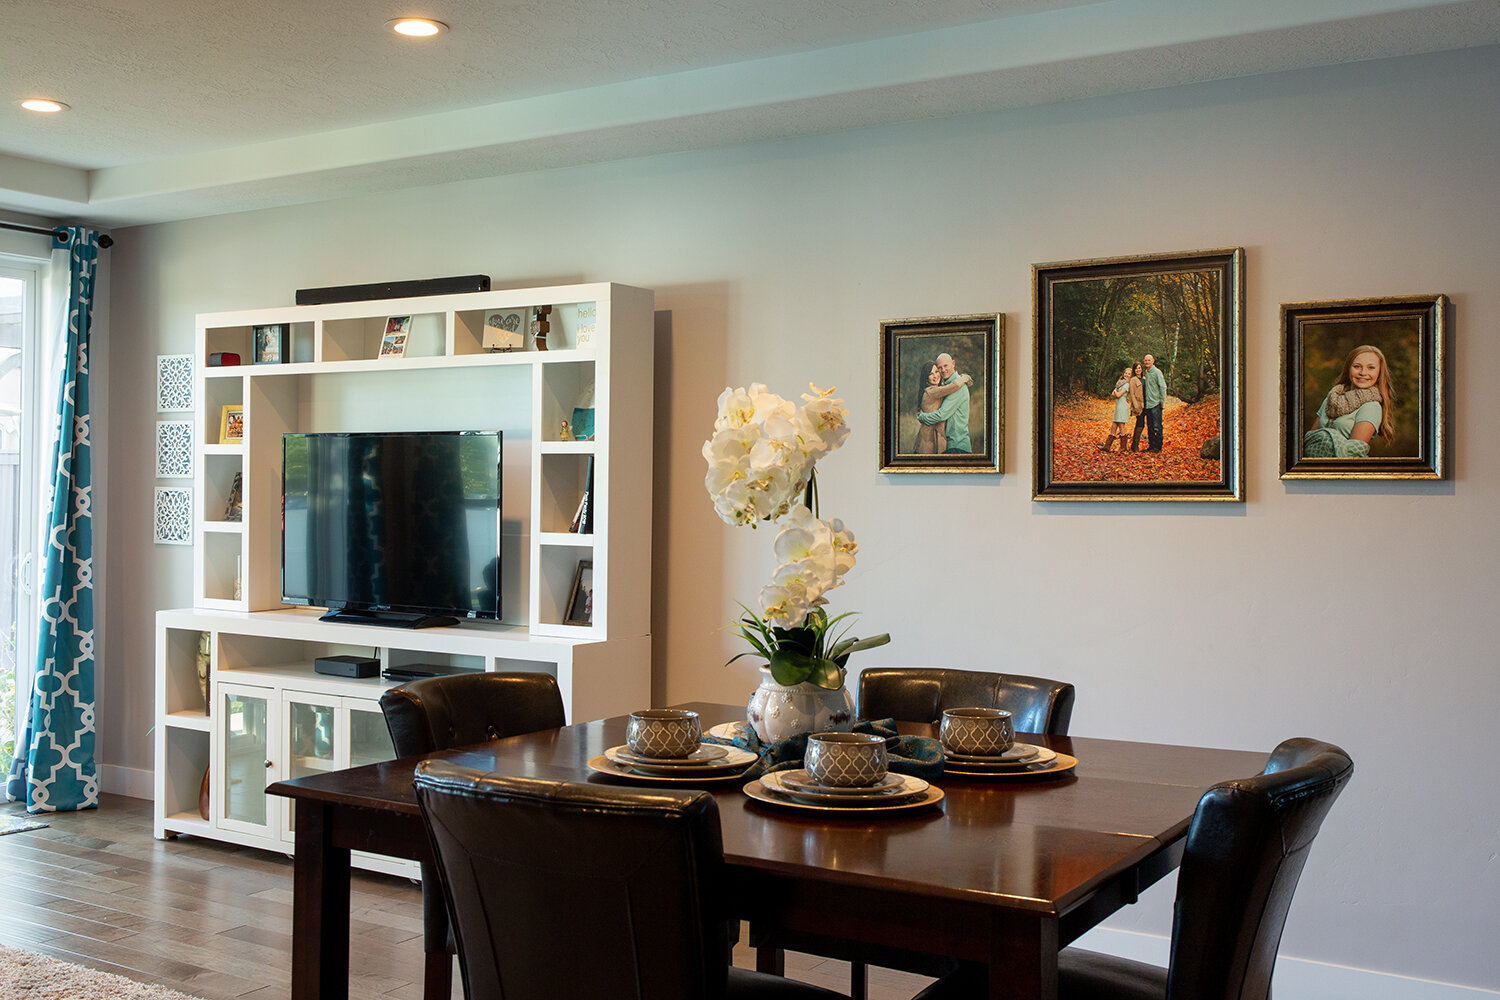 Display your portraits where you will see them most! The dining table is a great option.